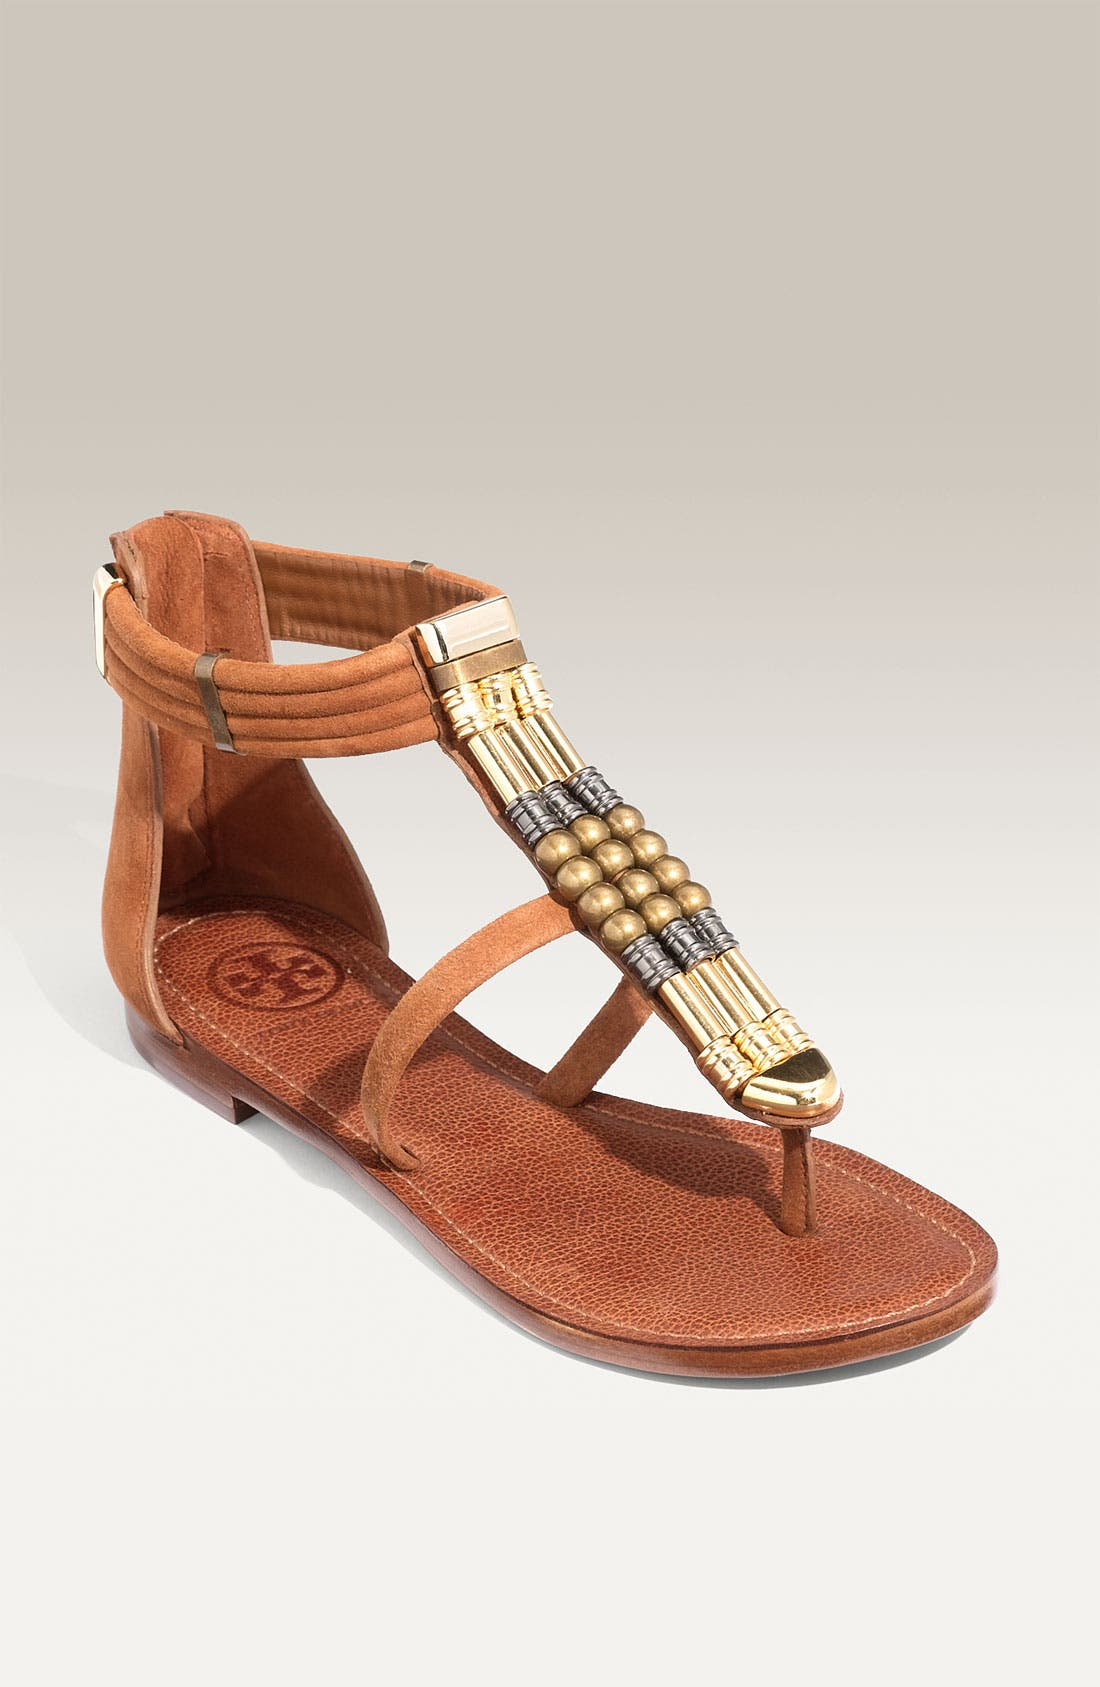 Alternate Image 1 Selected - Tory Burch 'Jennifer' Beaded Sandal